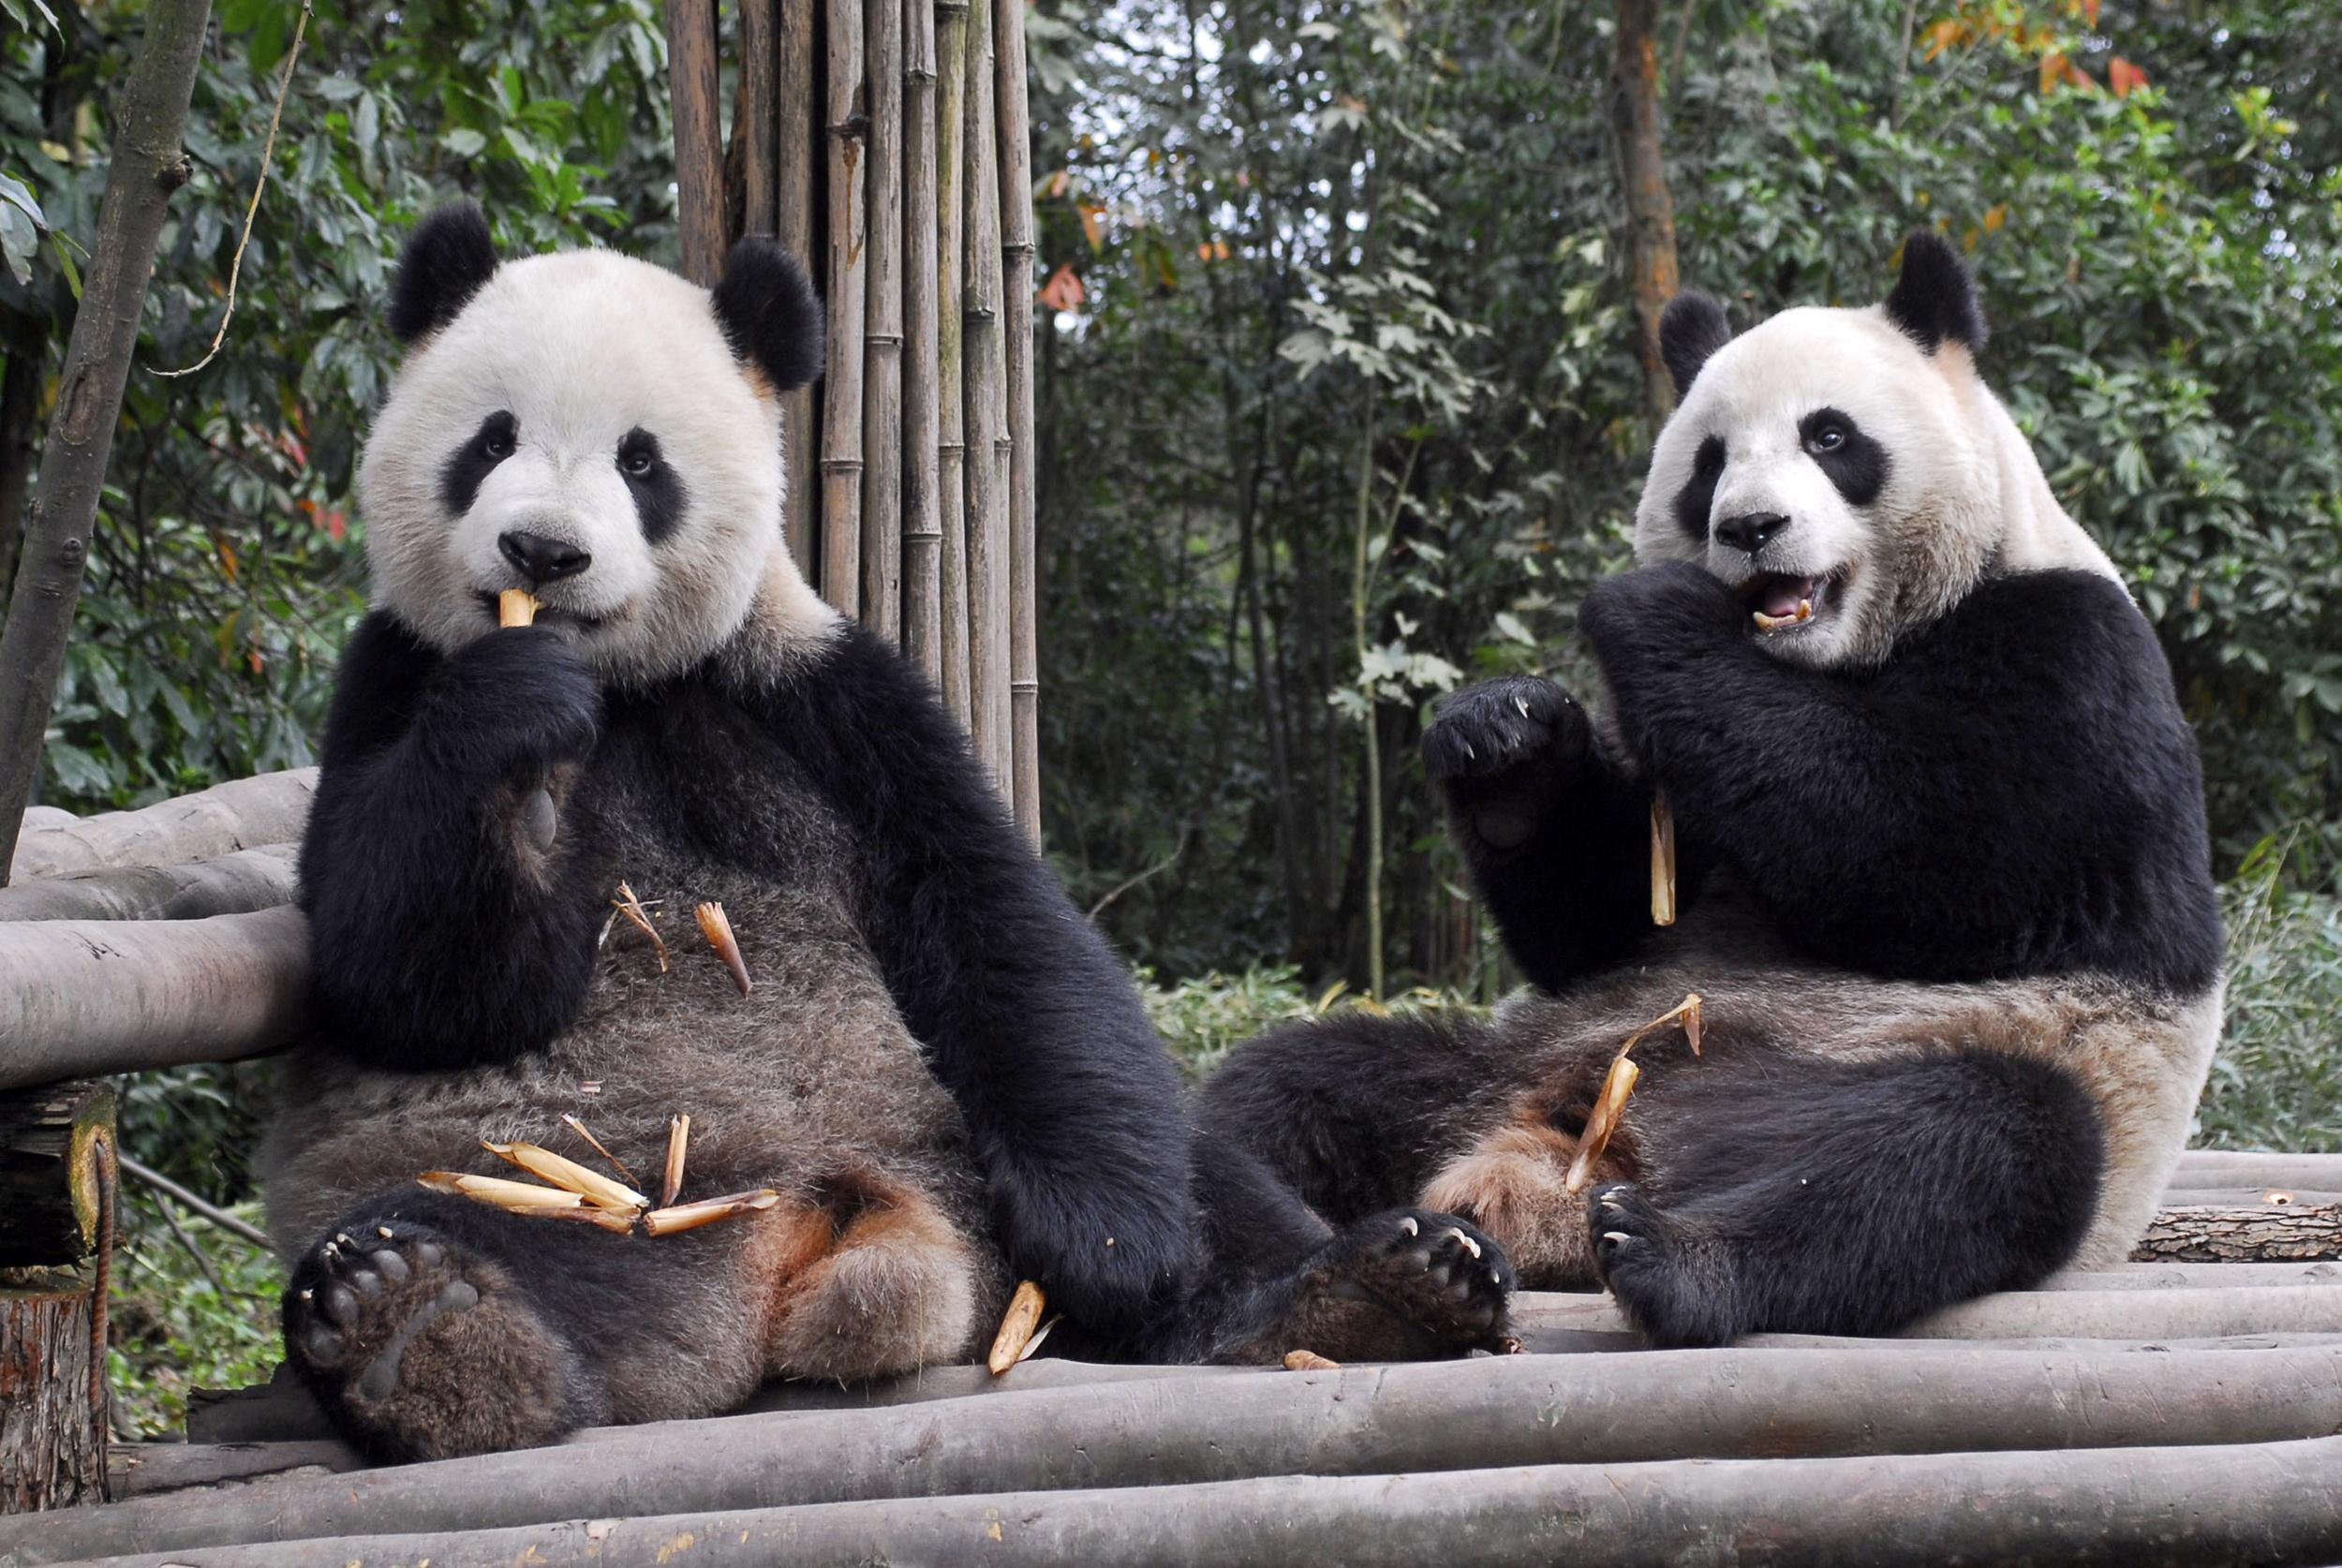 Image: Two giant pandas named